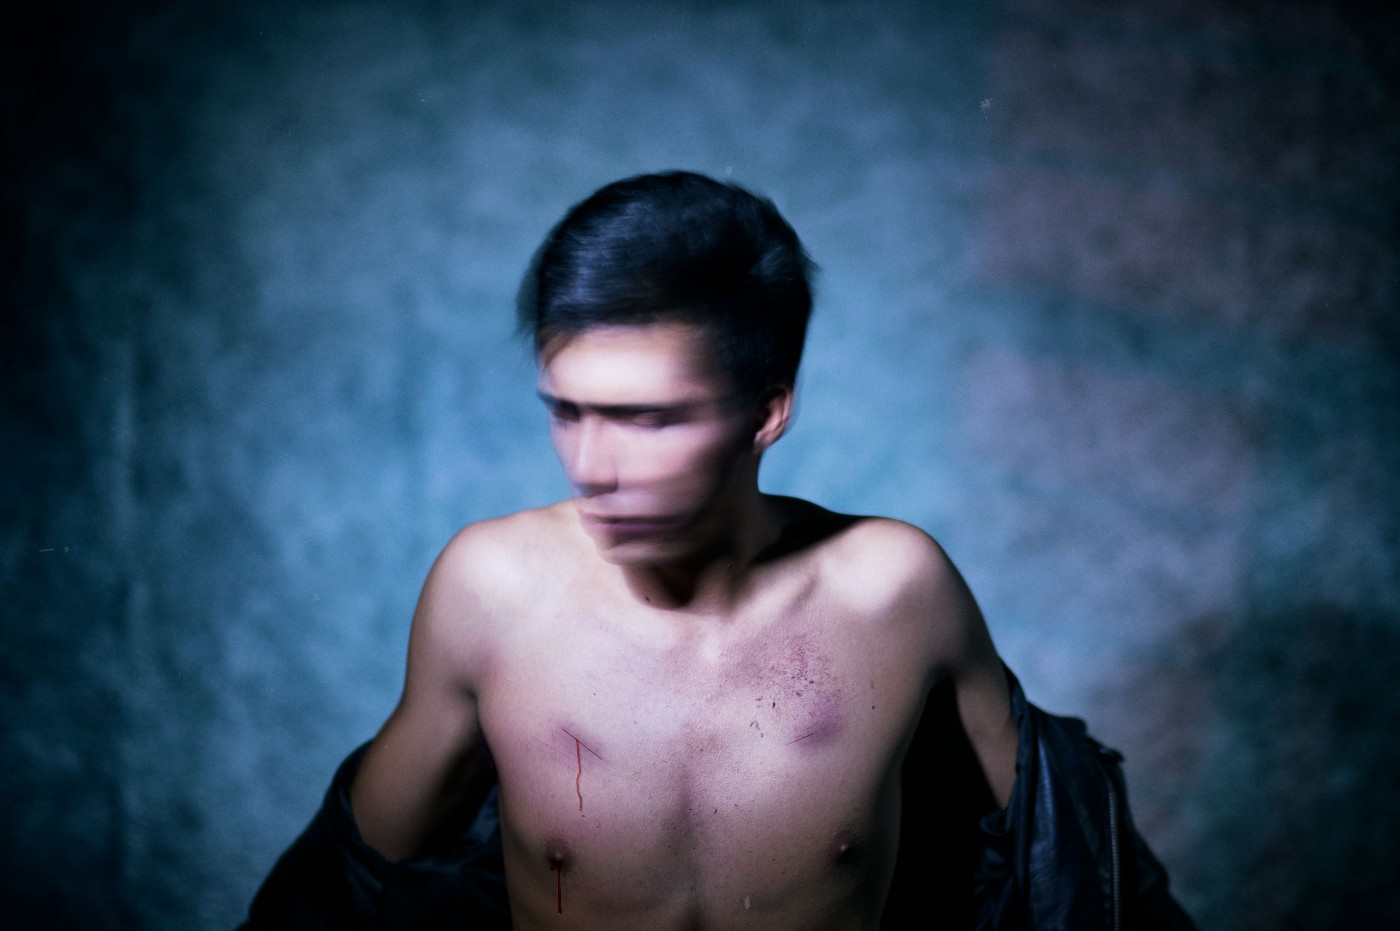 A man in darkened room with a cut on his chest.